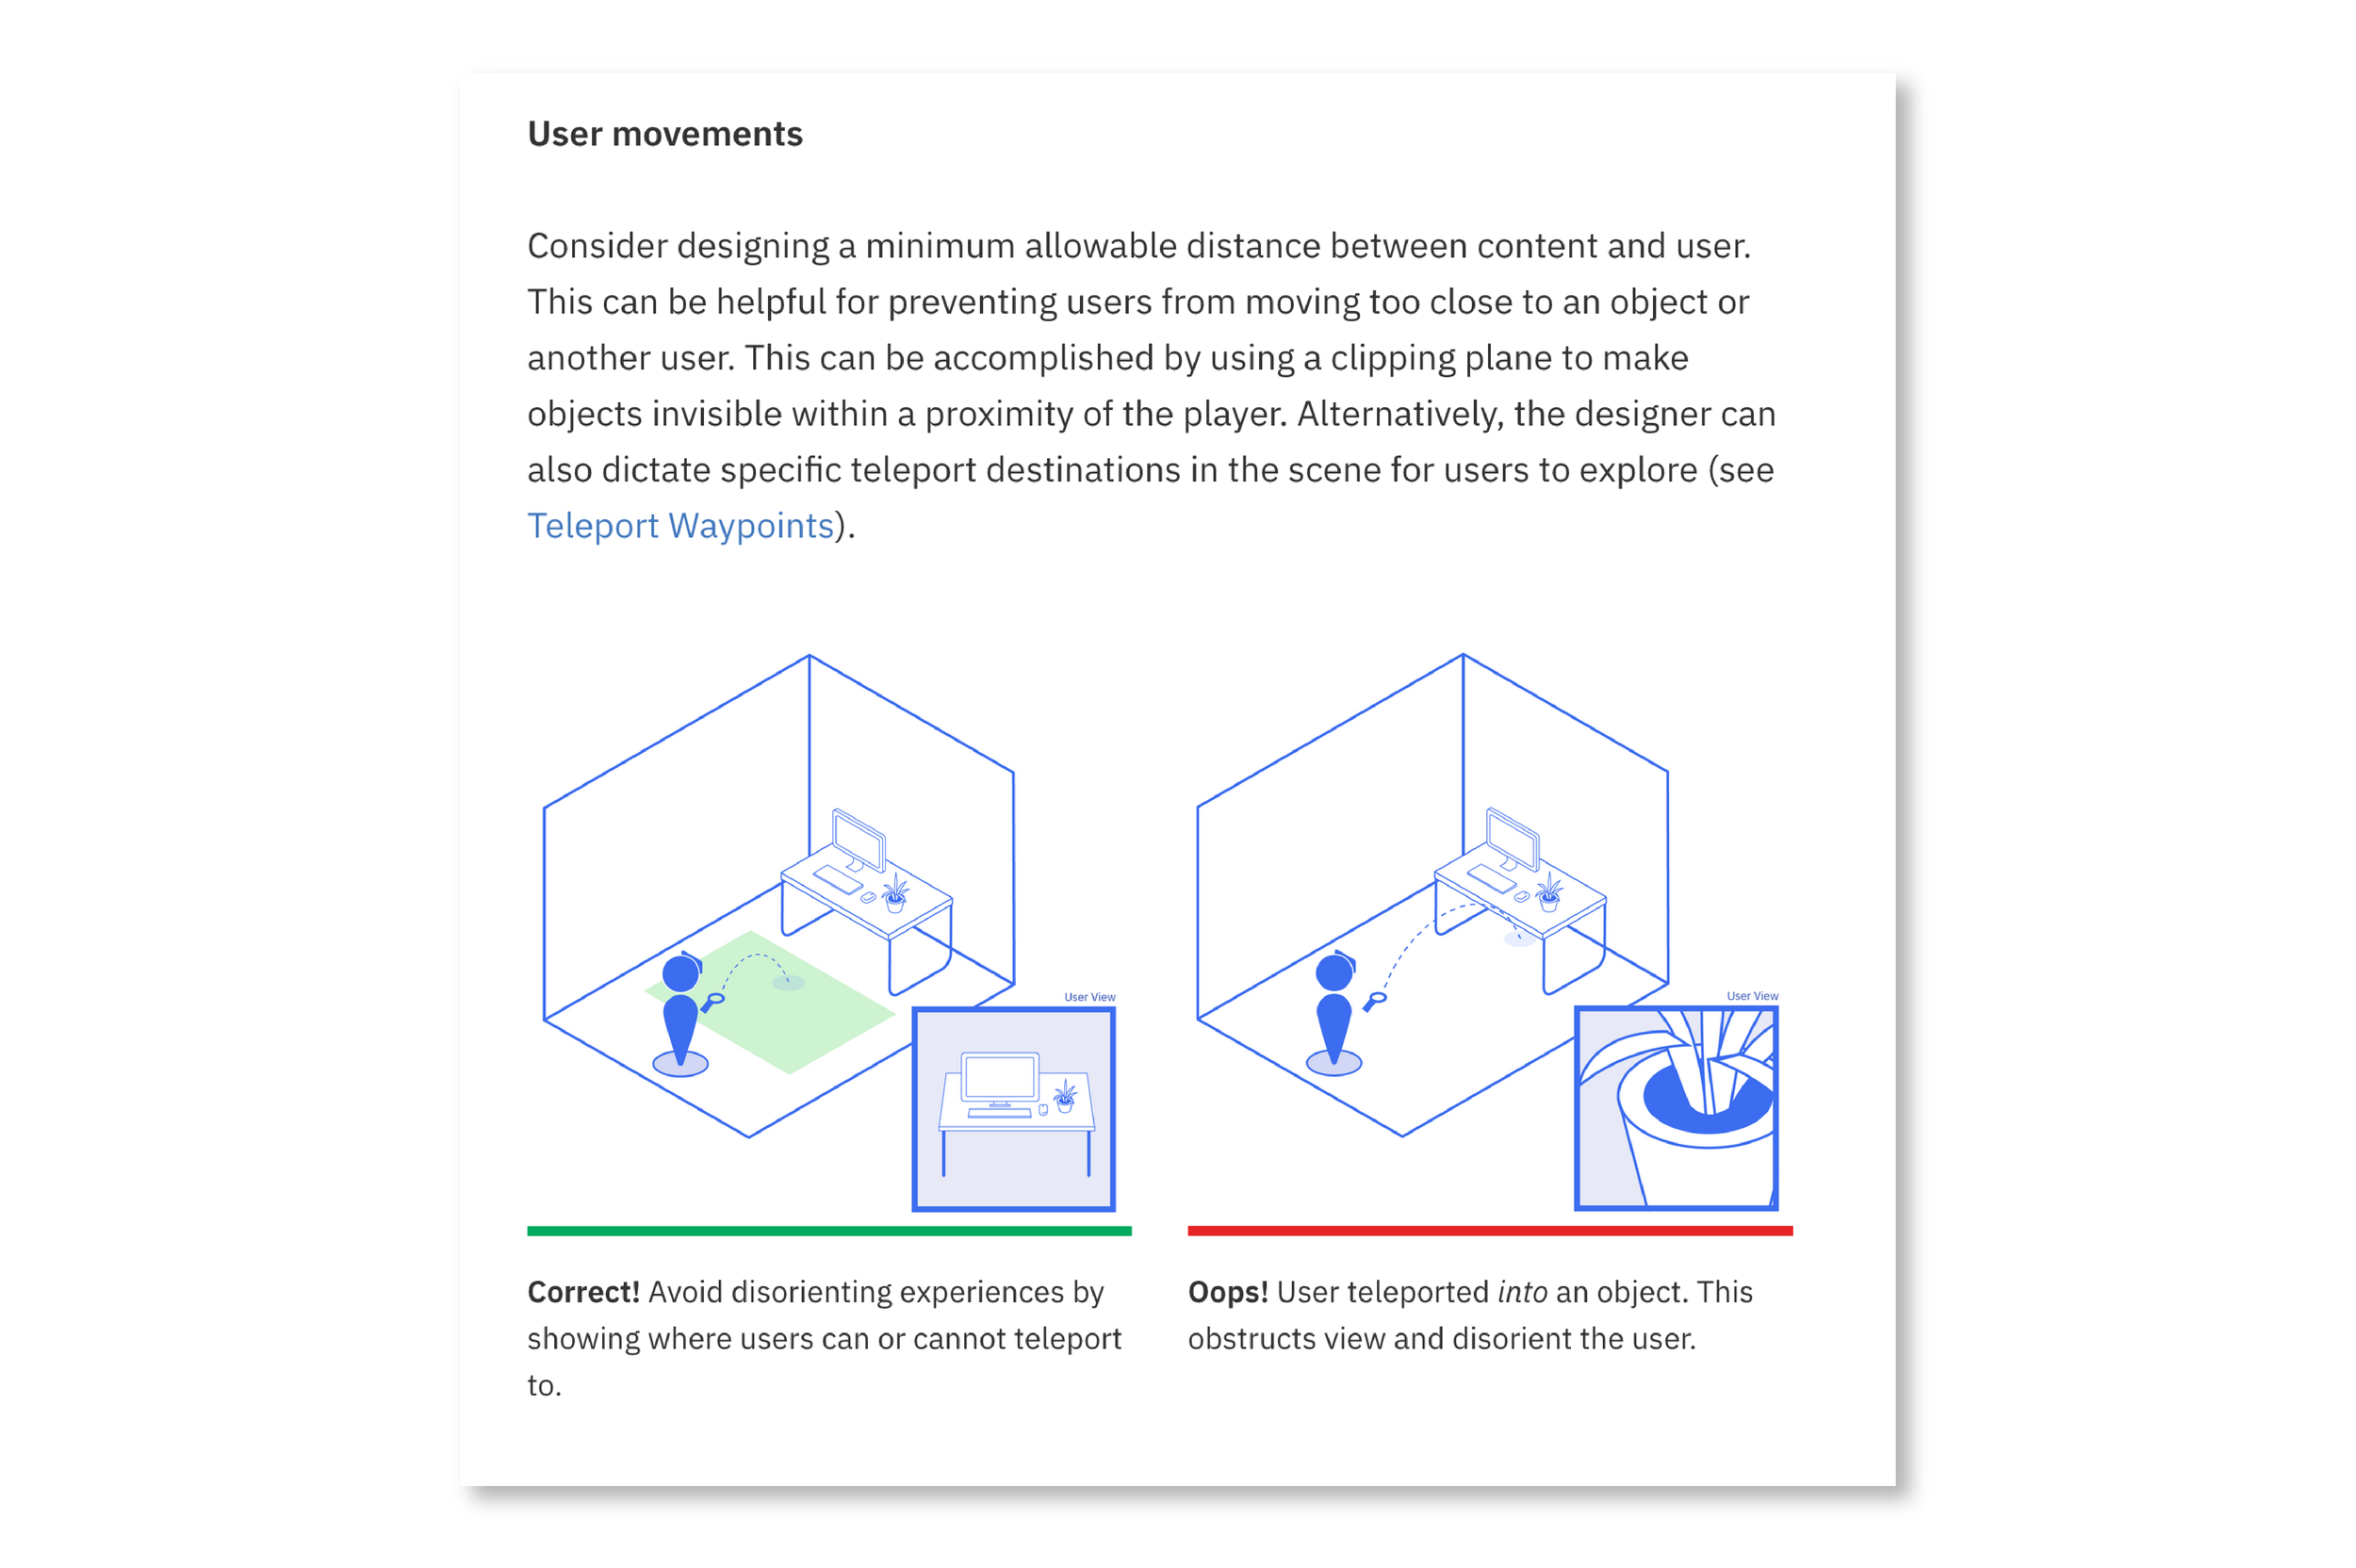 We create illustrations to show clear examples of best practices.